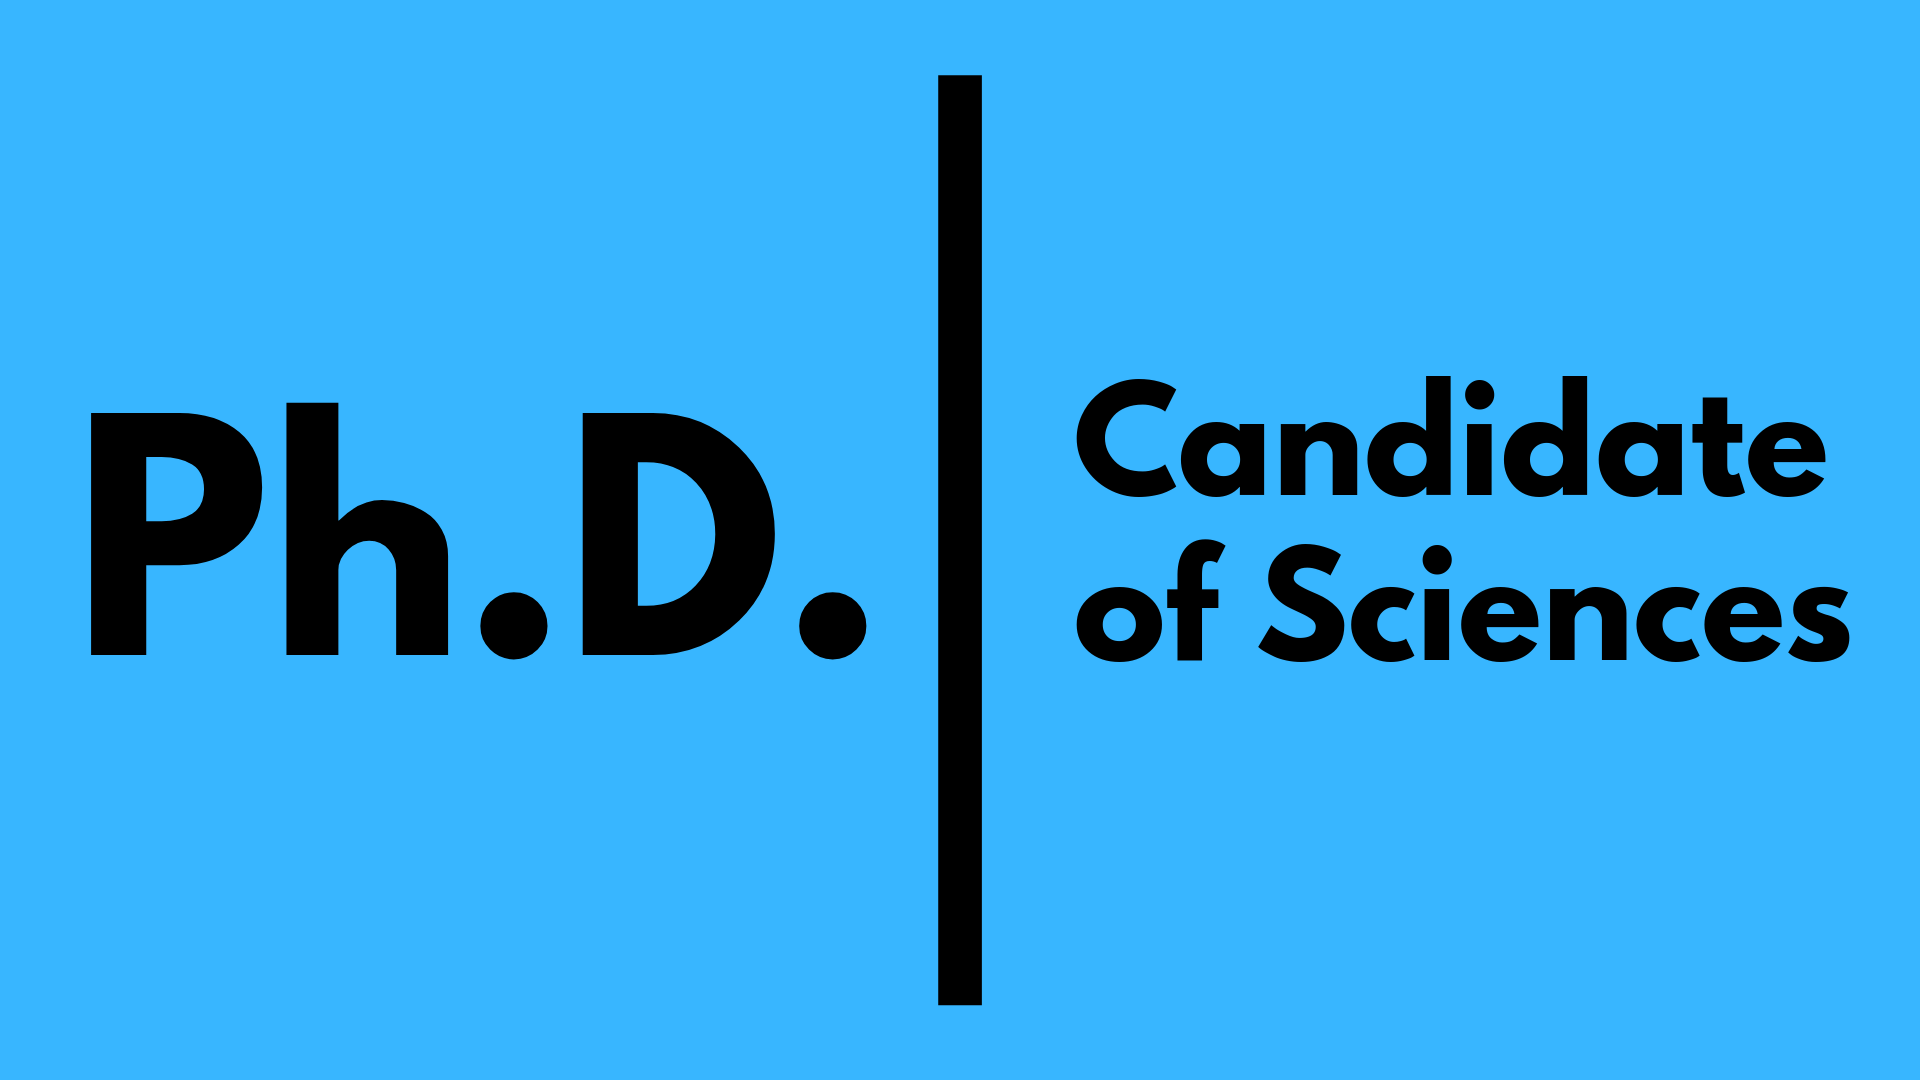 Ph.D. or Candidate of Sciences